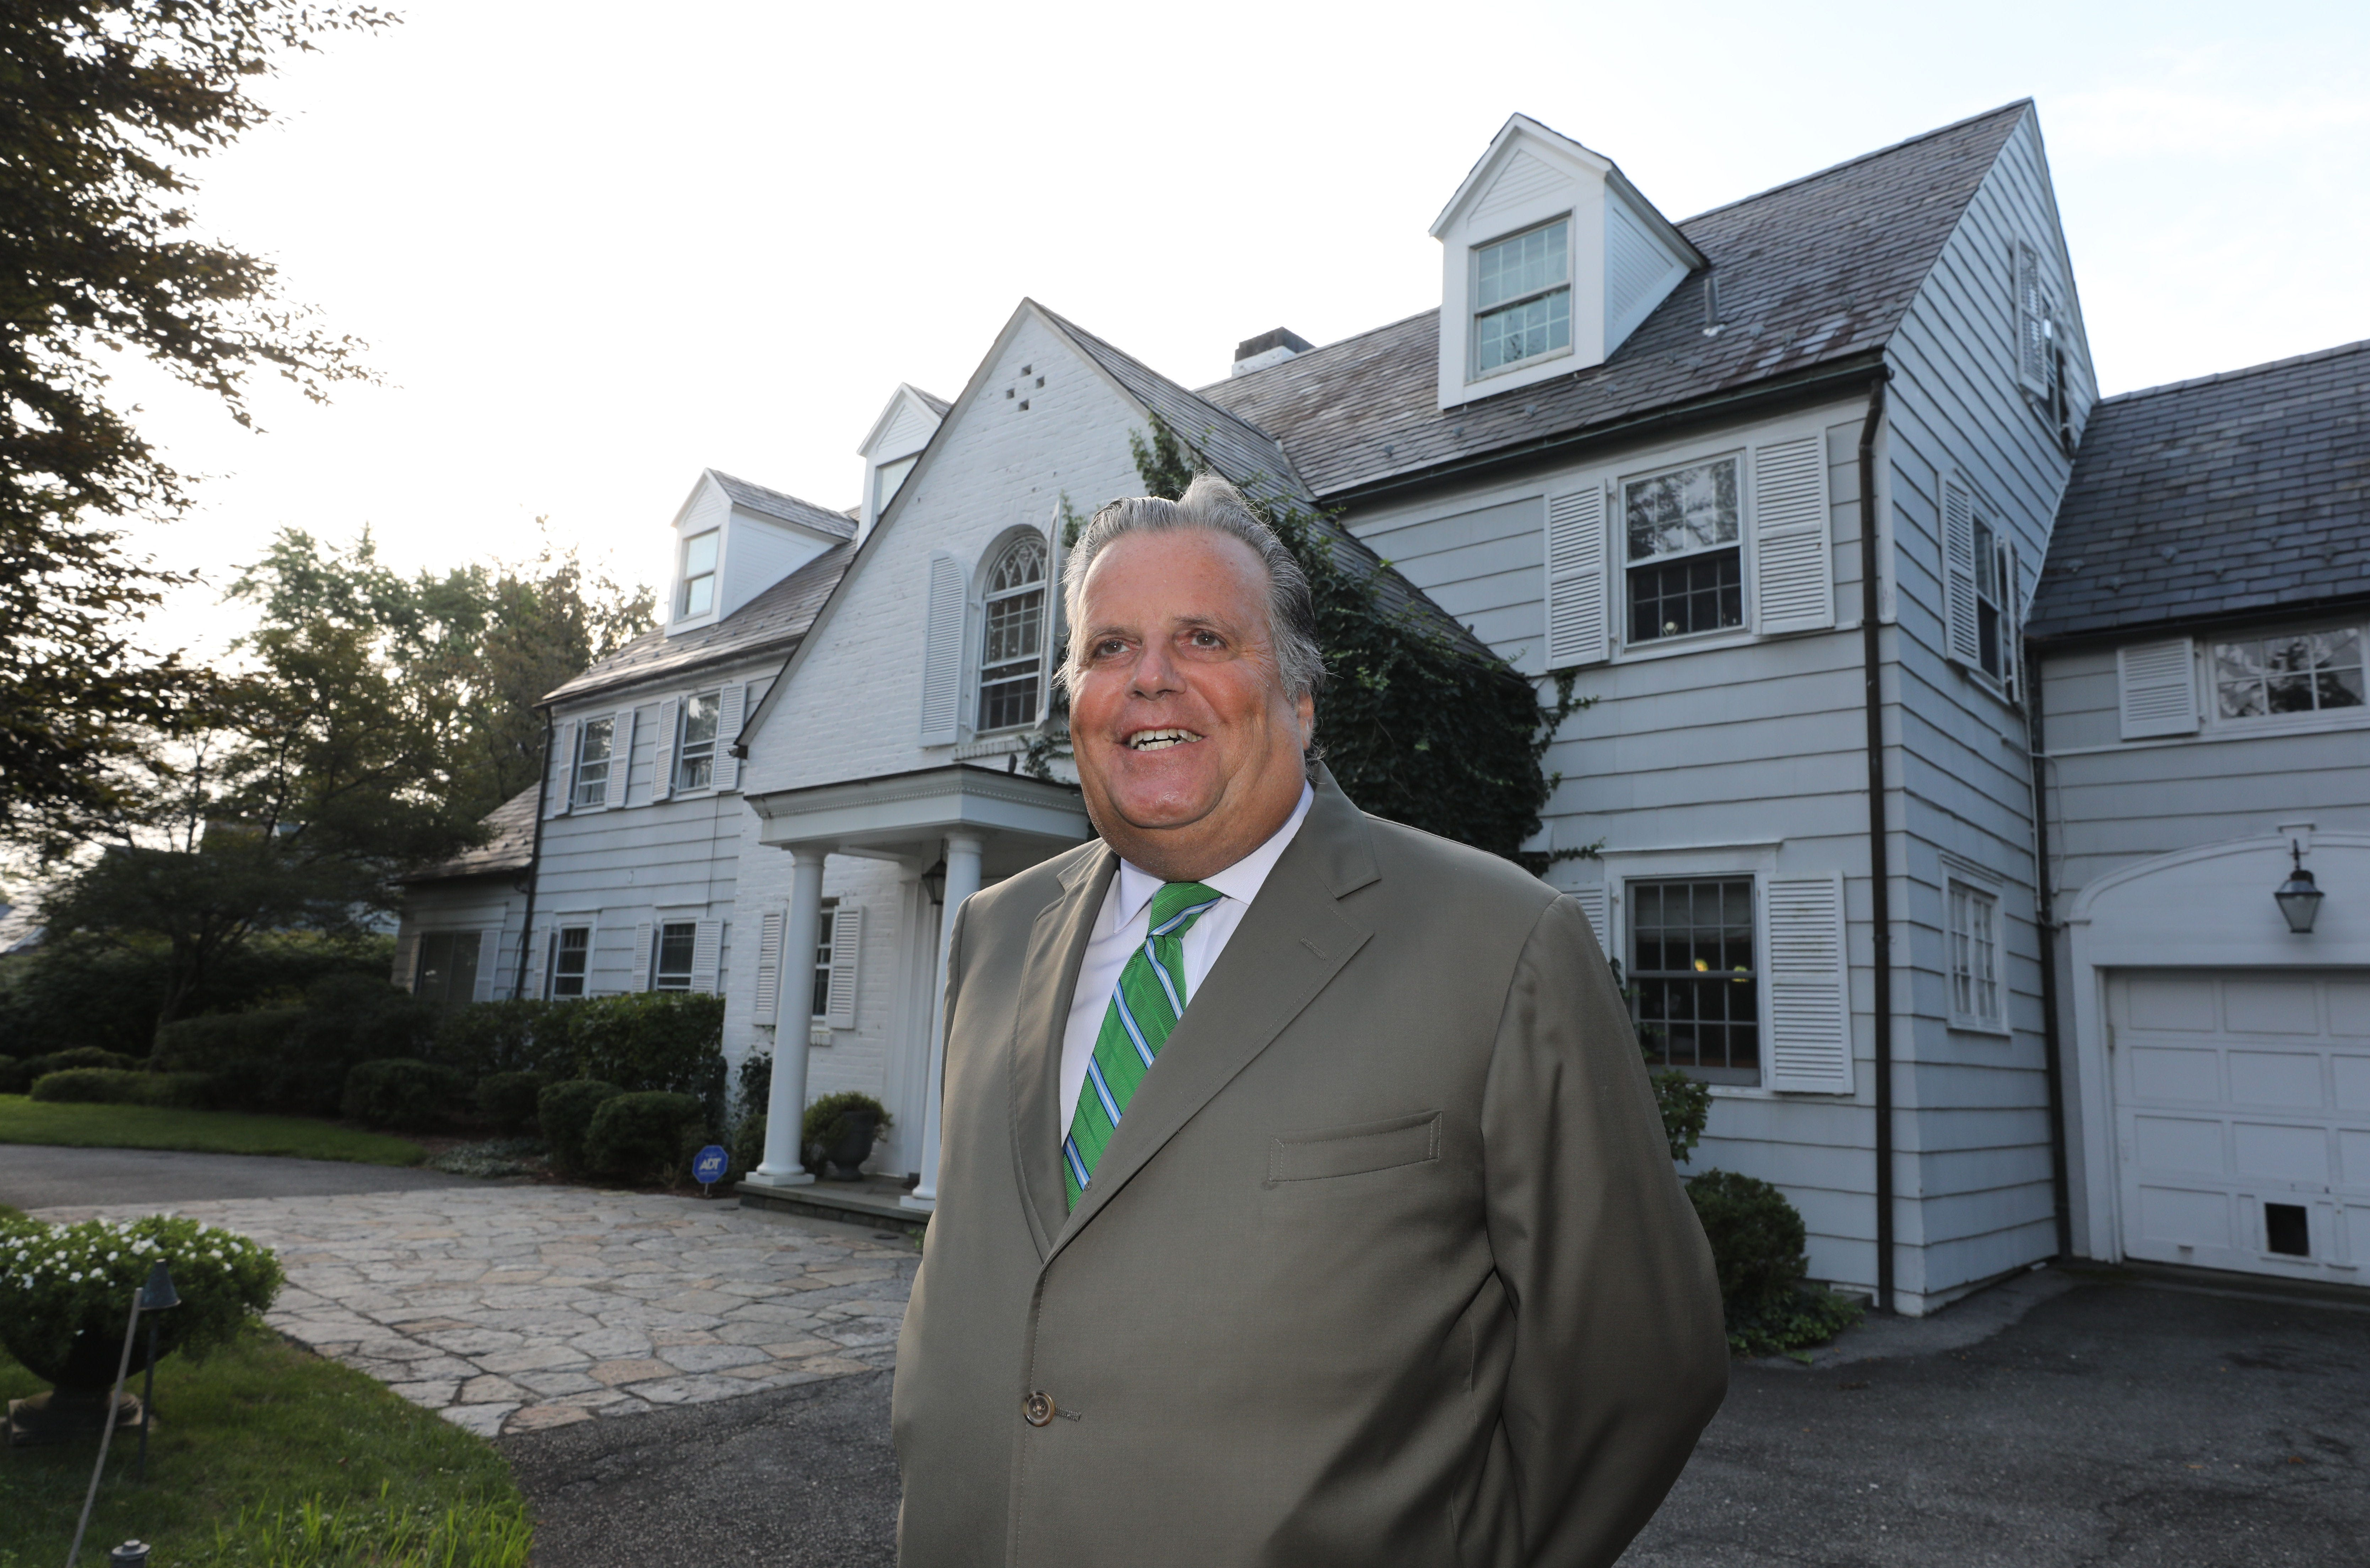 Glenn Bellitto was a town councilman with the Town of Eastchester.